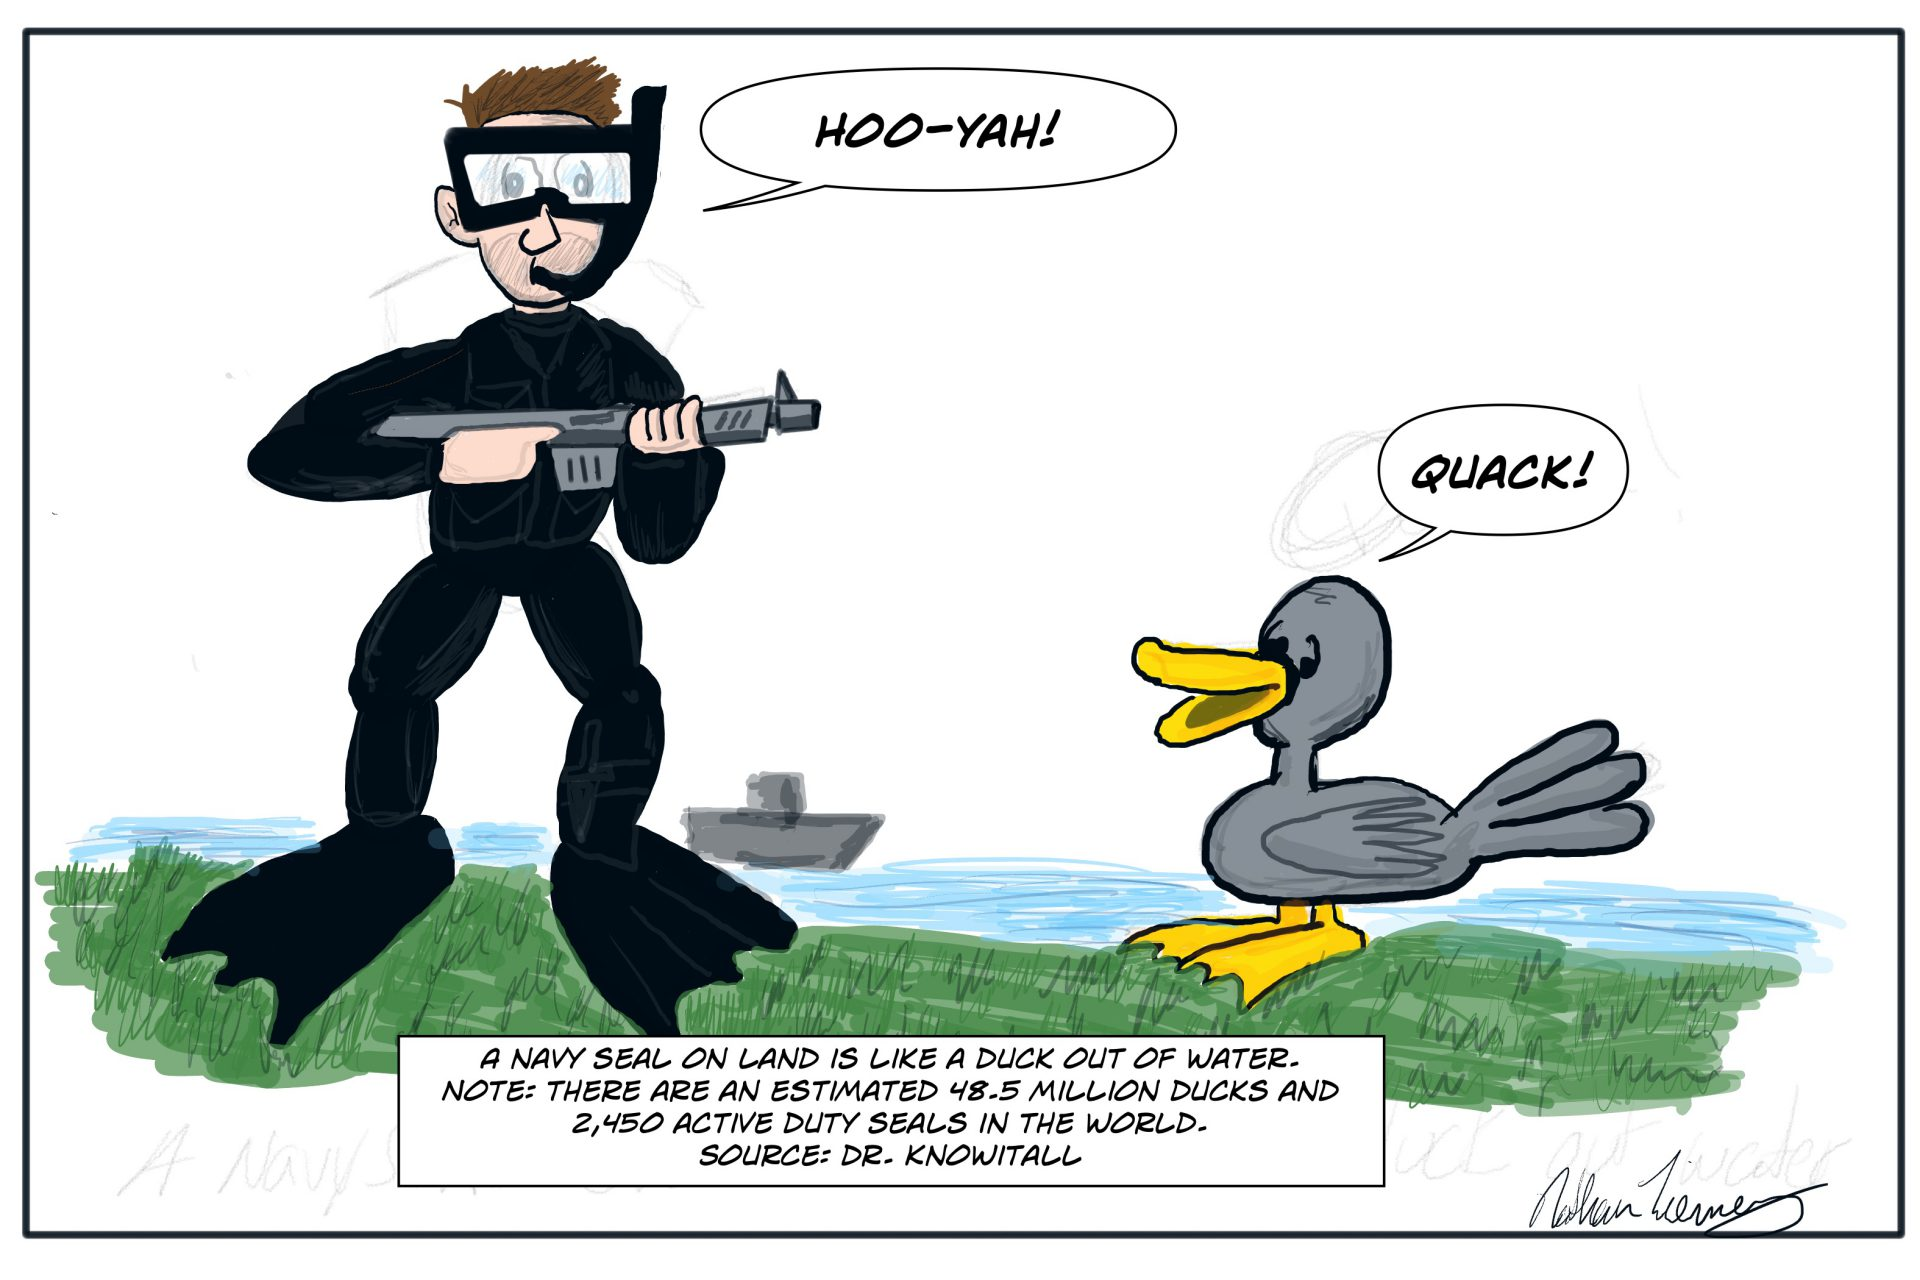 navy-seal-military-humor-duck